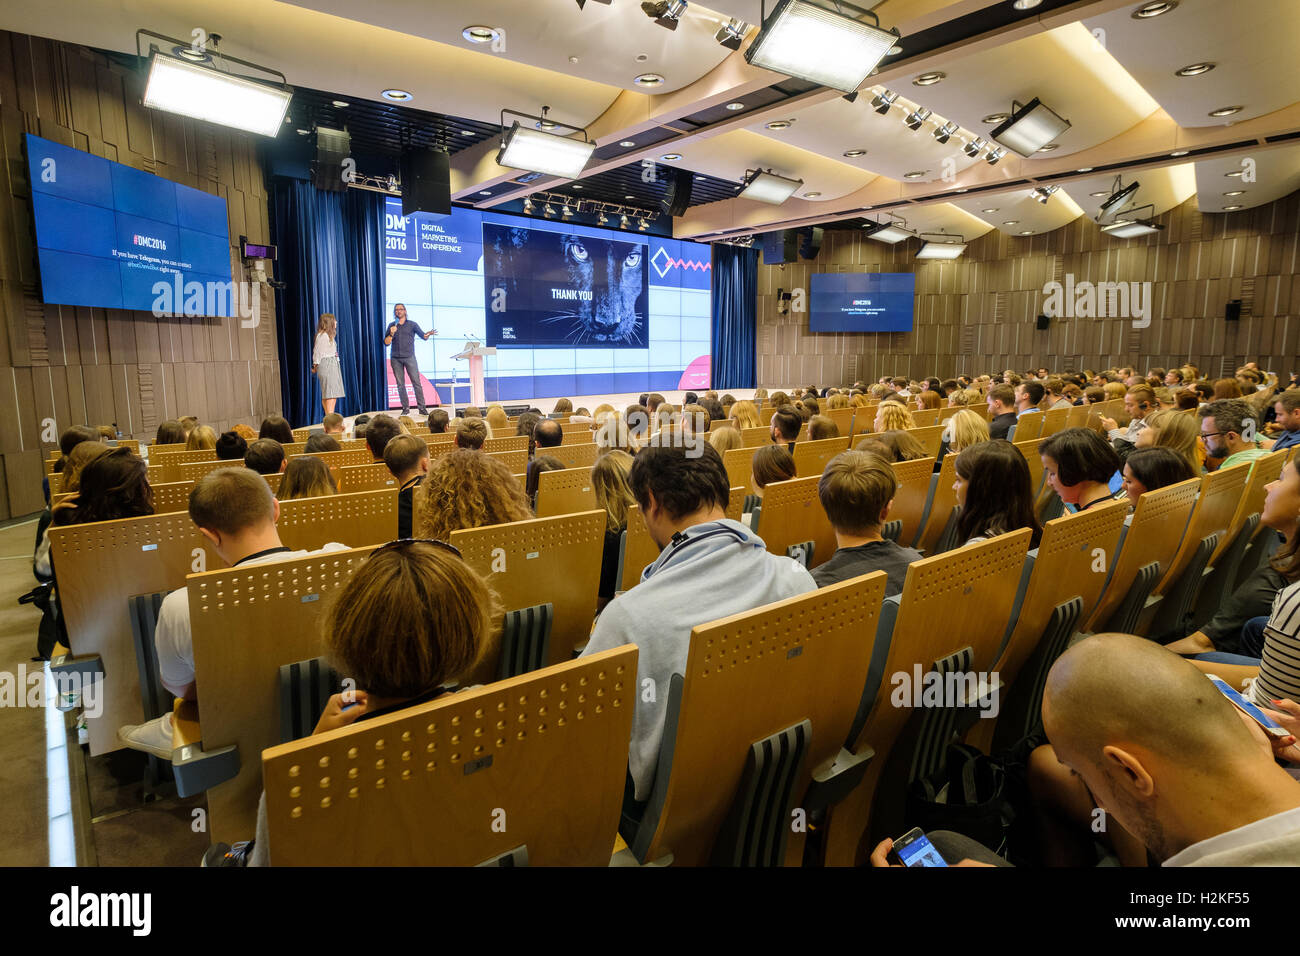 People attend business conference - Stock Image